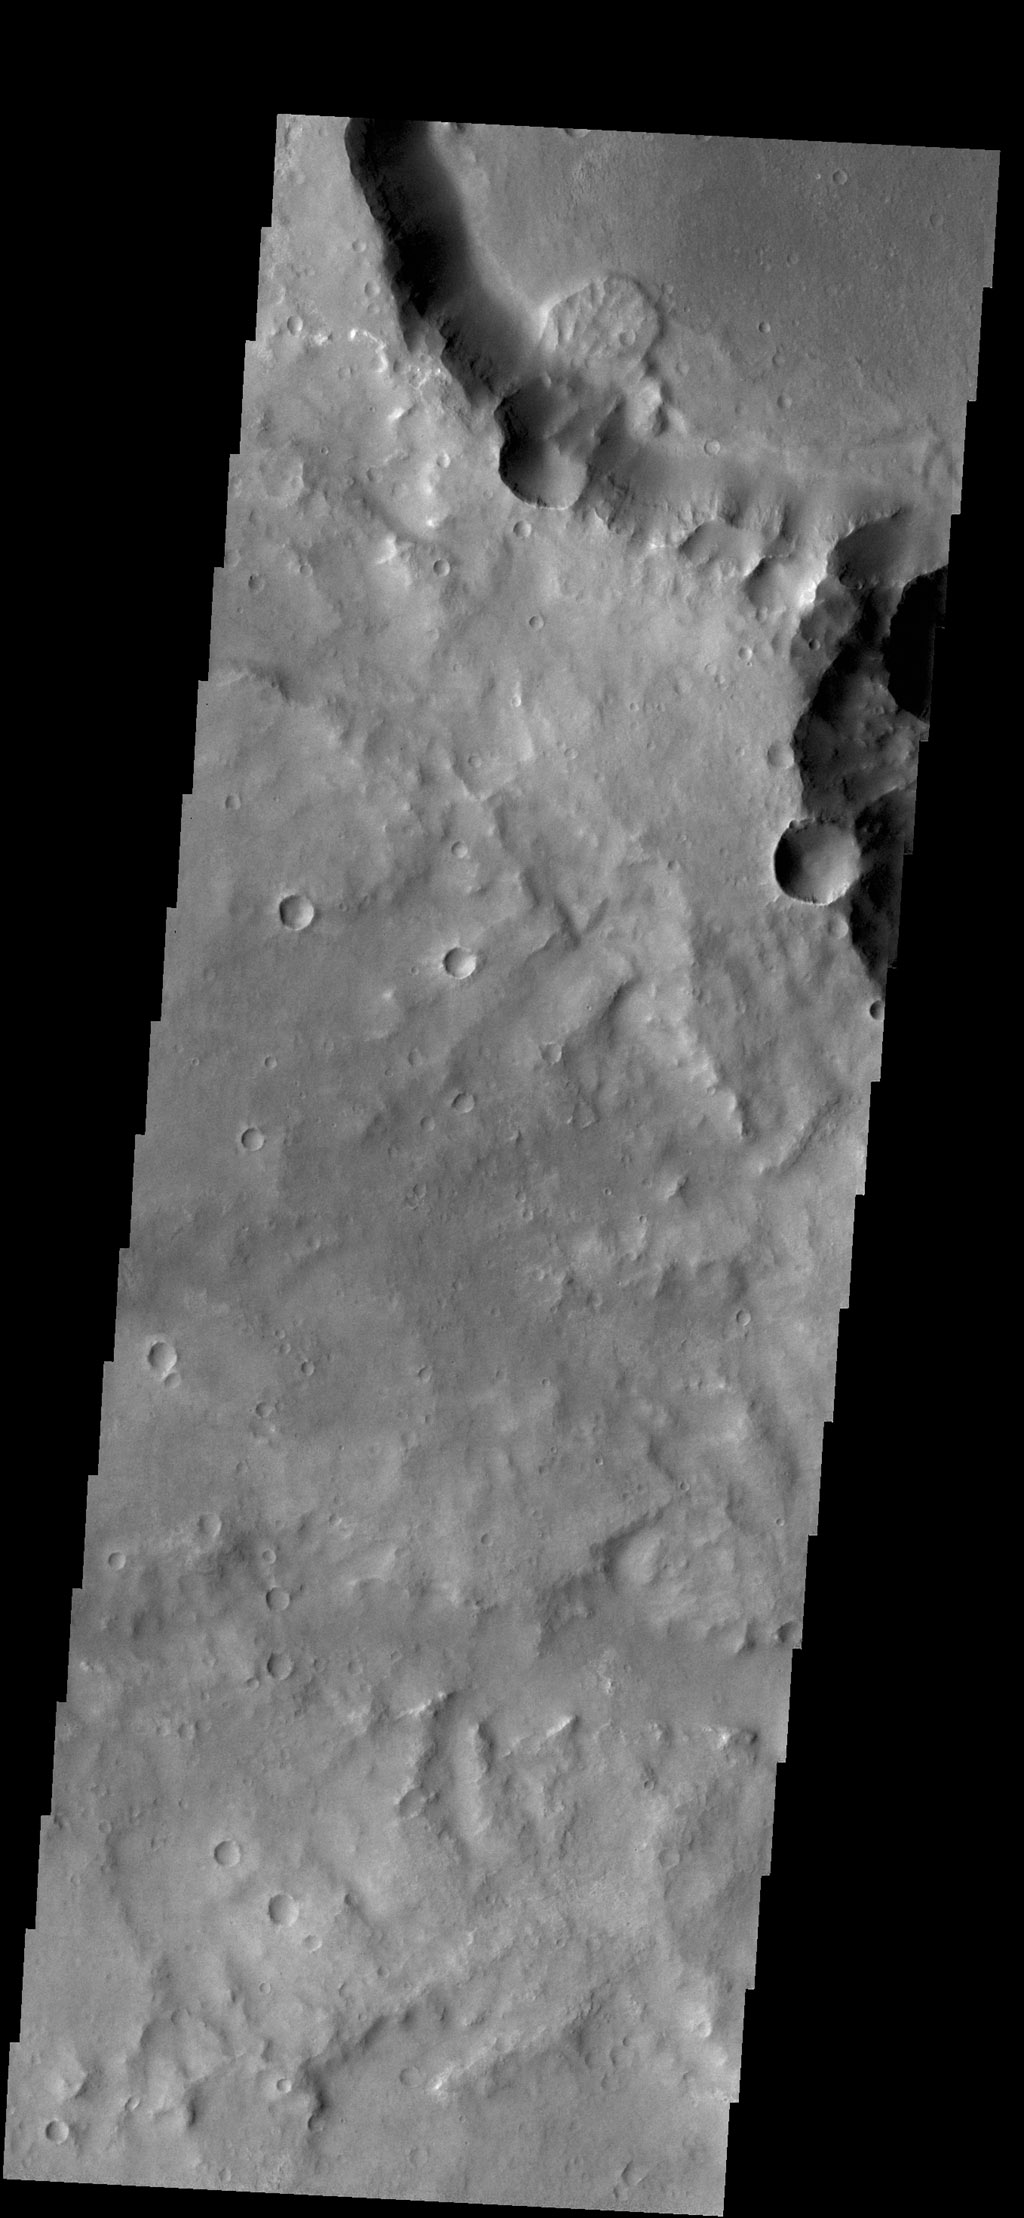 This small landslide deposit is located in an unnamed crater in Margaritifer Terra in this image captured by NASA's 2001 Mars Odyssey spacecraft.